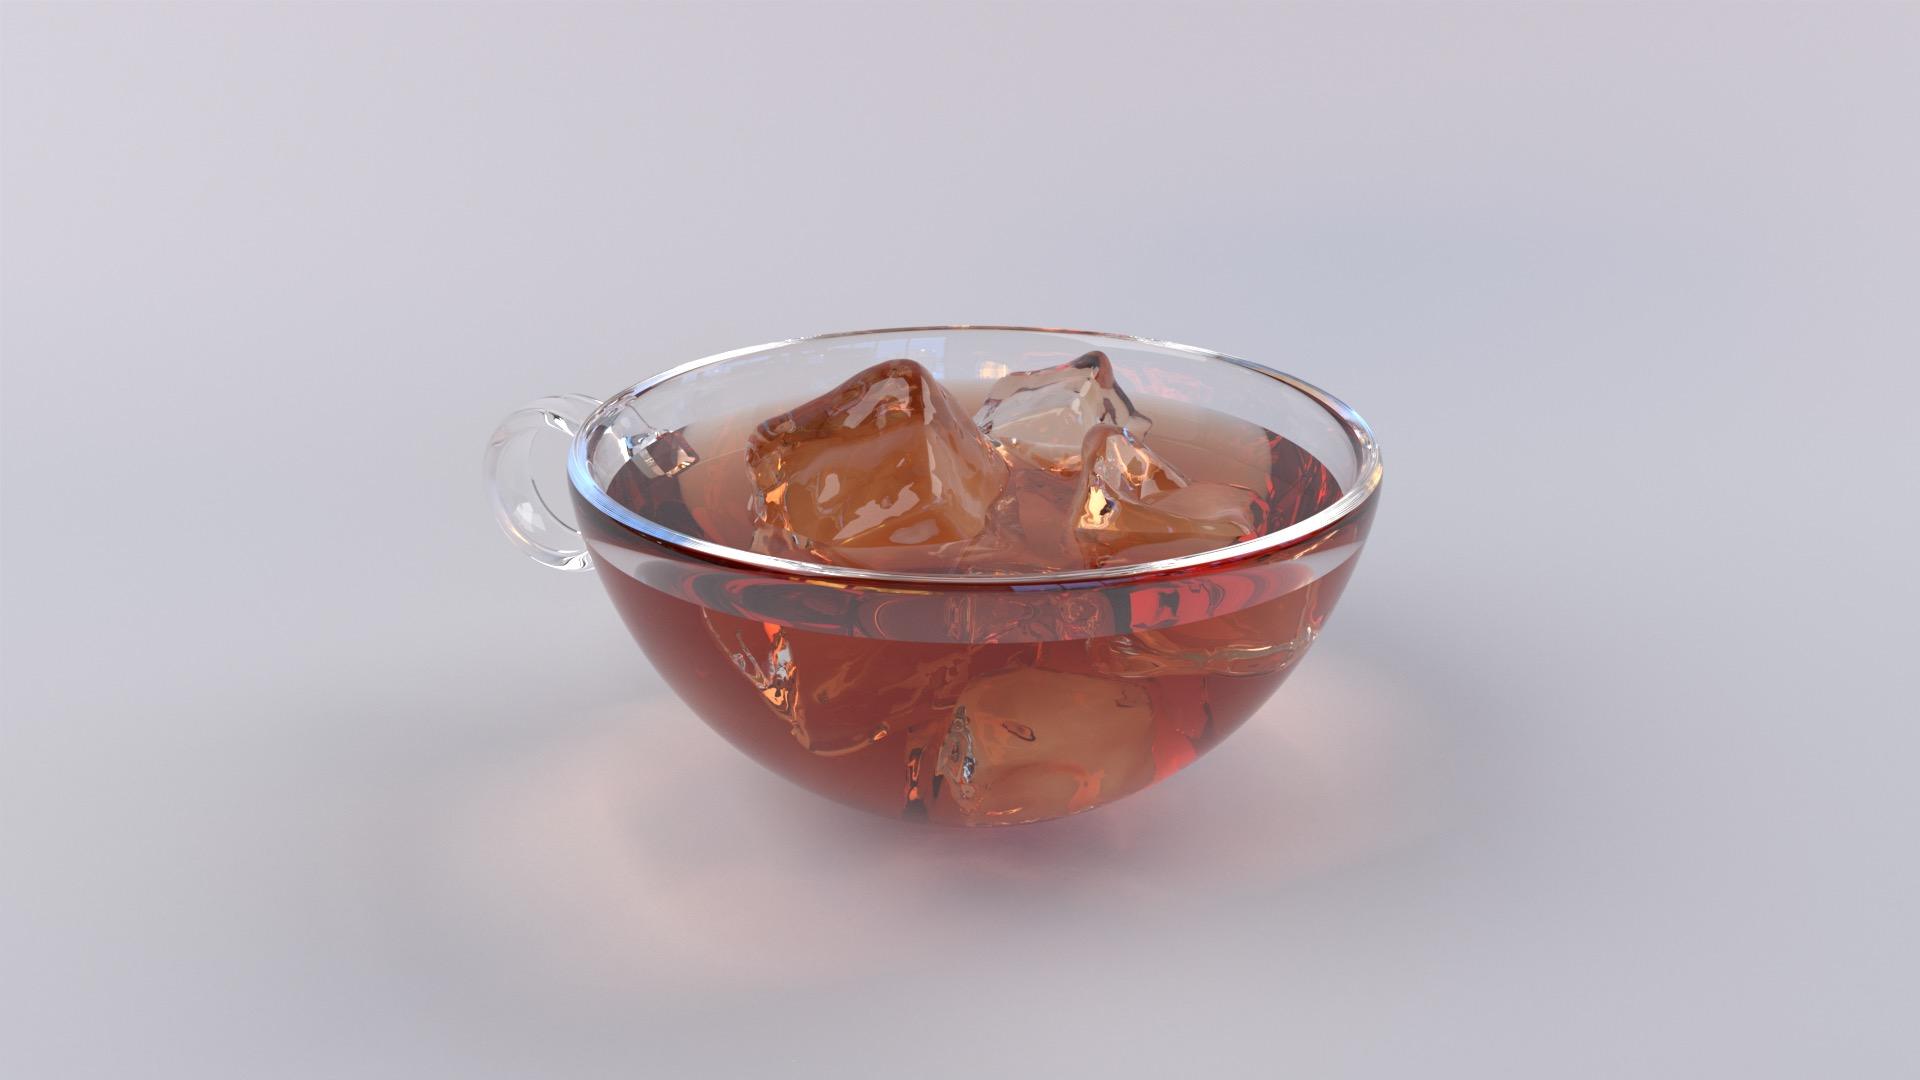 Figure 1: Ice cubes floating in tea inside of a glass teacup, rendered in Takua Renderer using priority-based nested dielectrics.